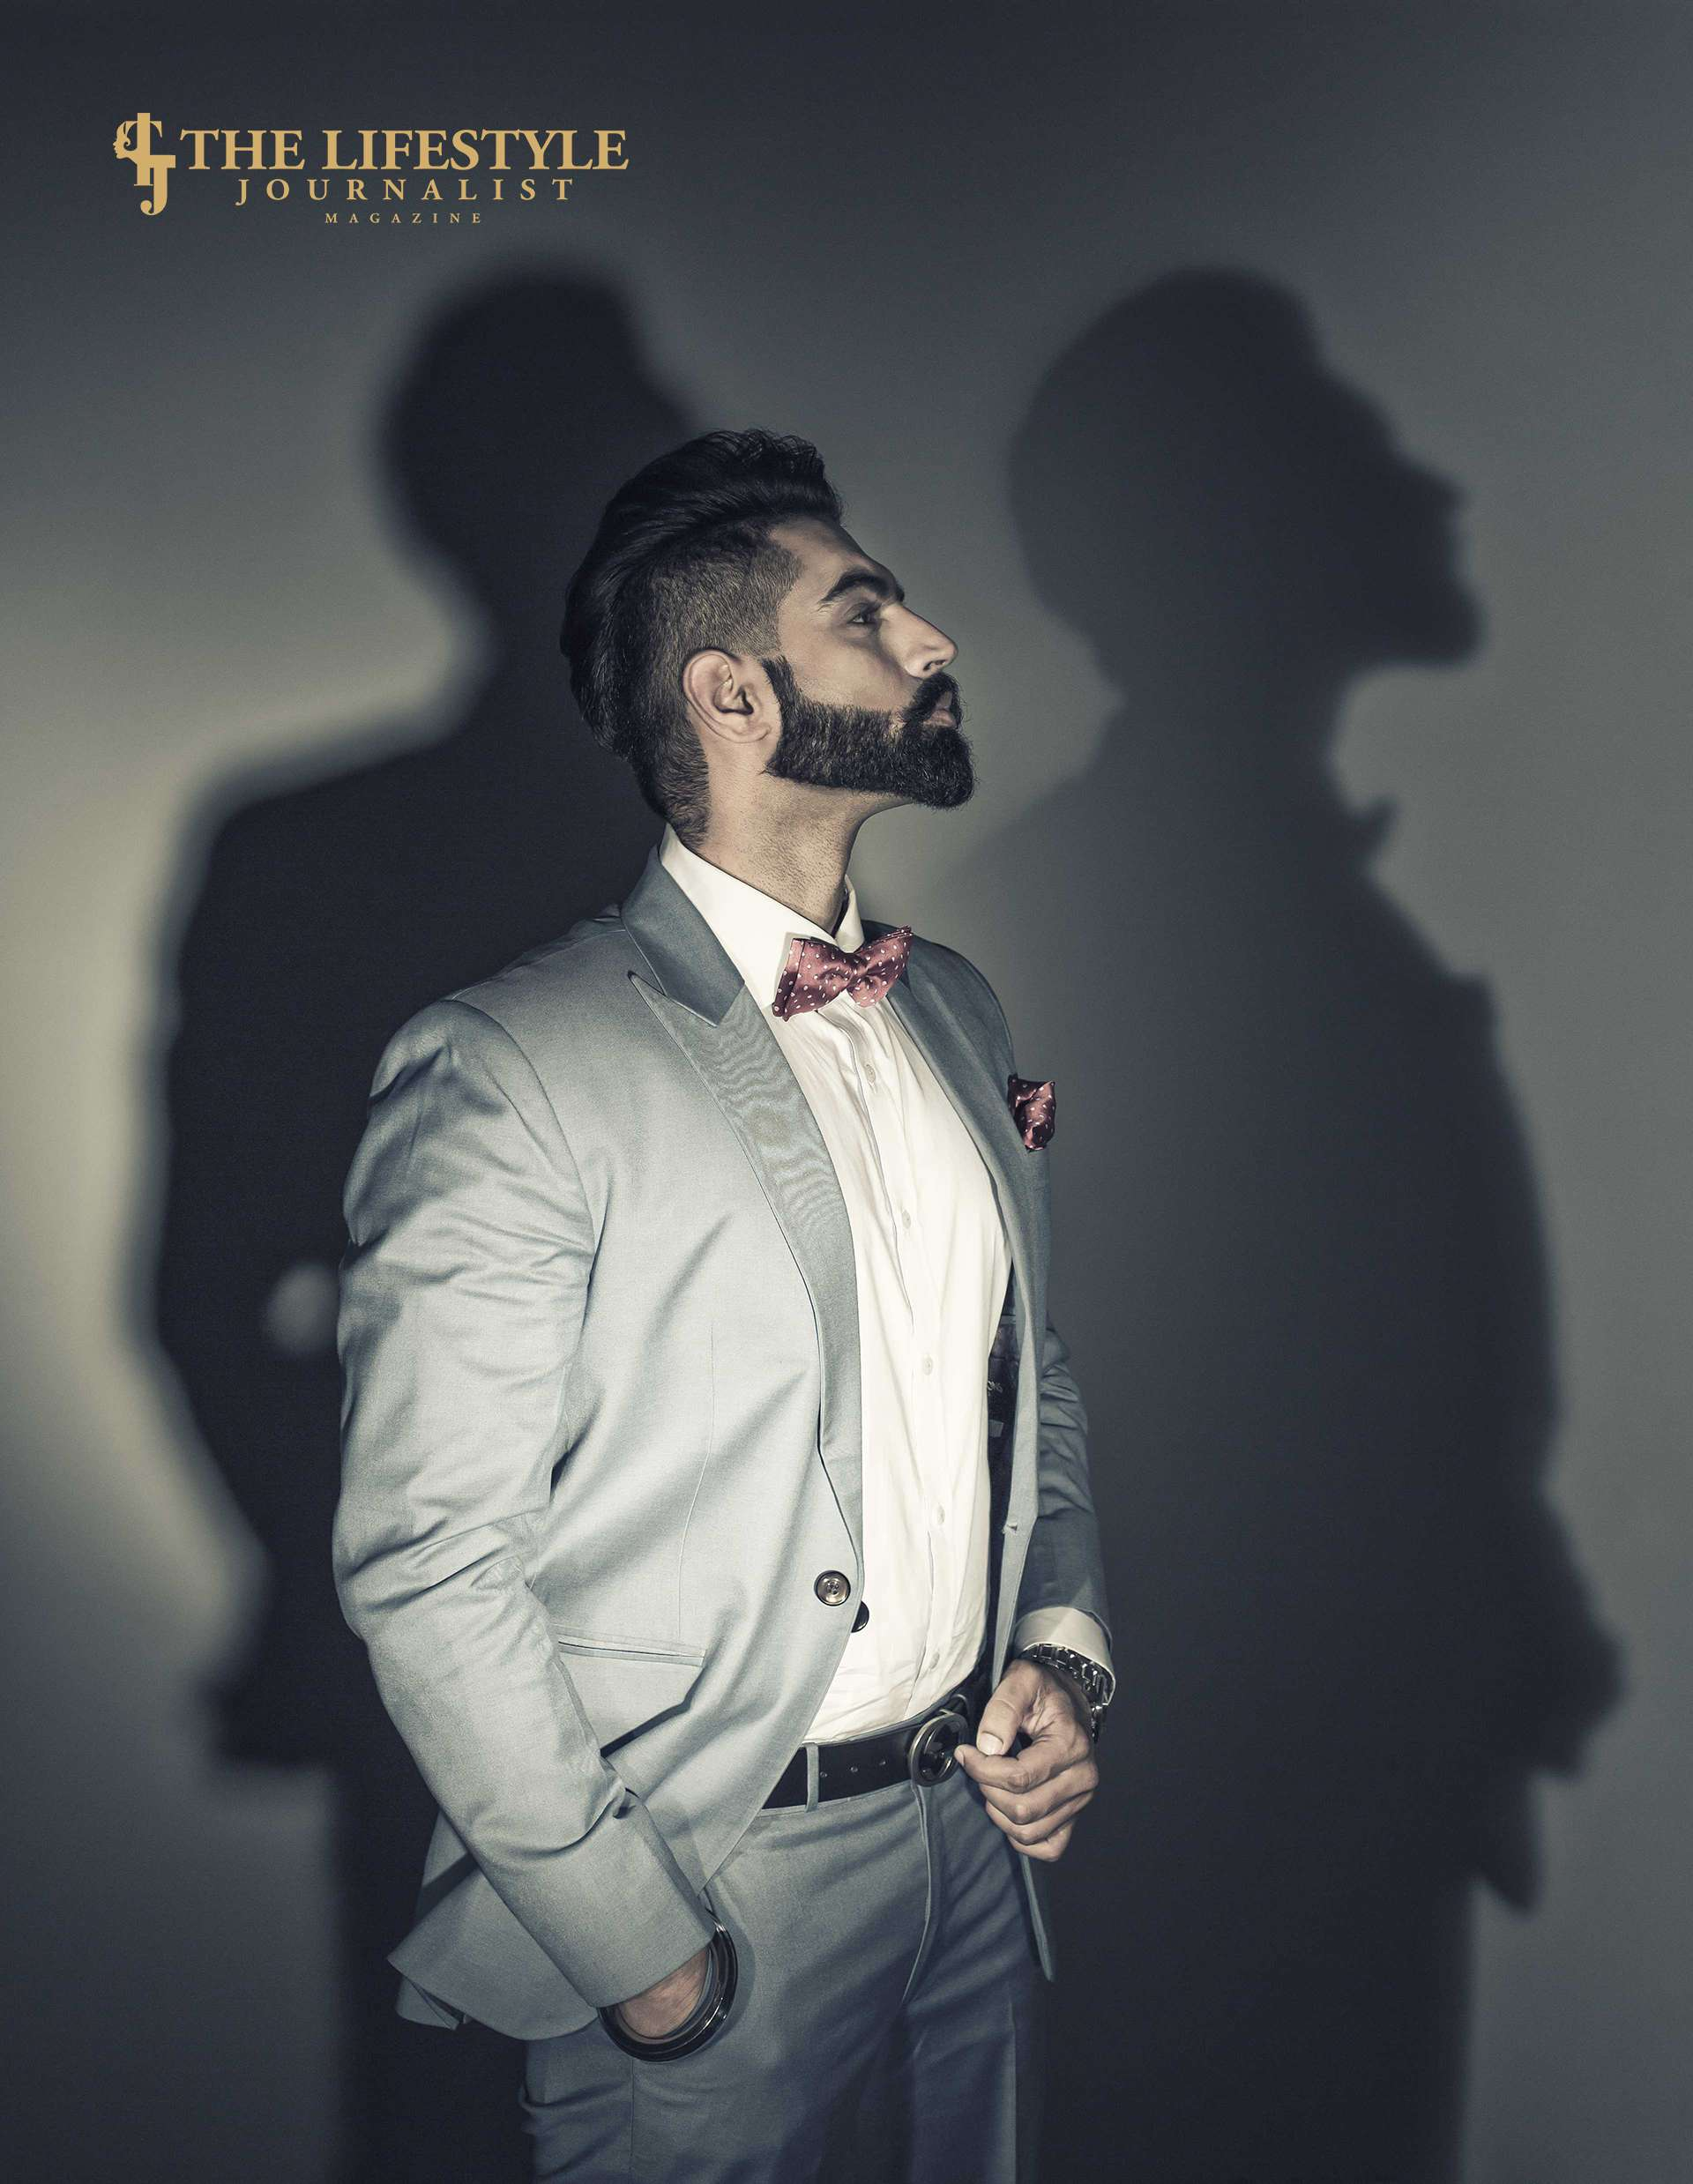 Parmish Verma at TLJ magazine